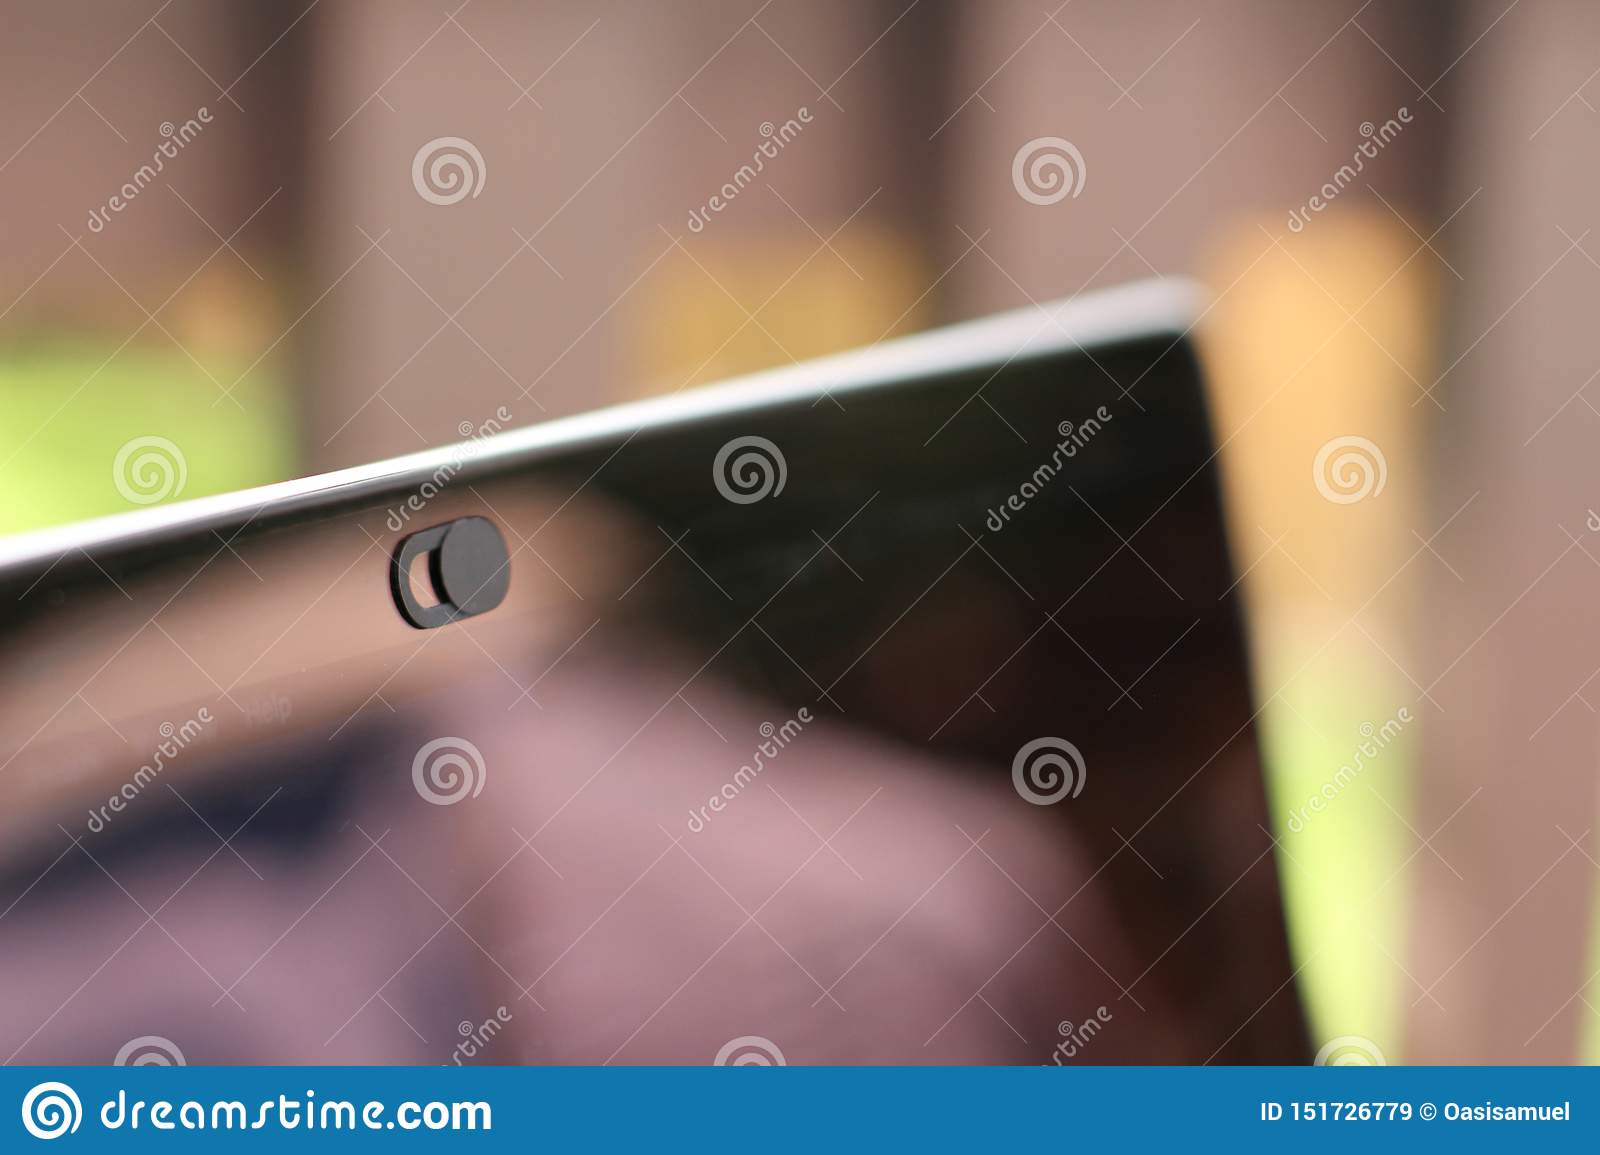 Webcam Cover For Laptop Table Or Phone Stock Image Image Of